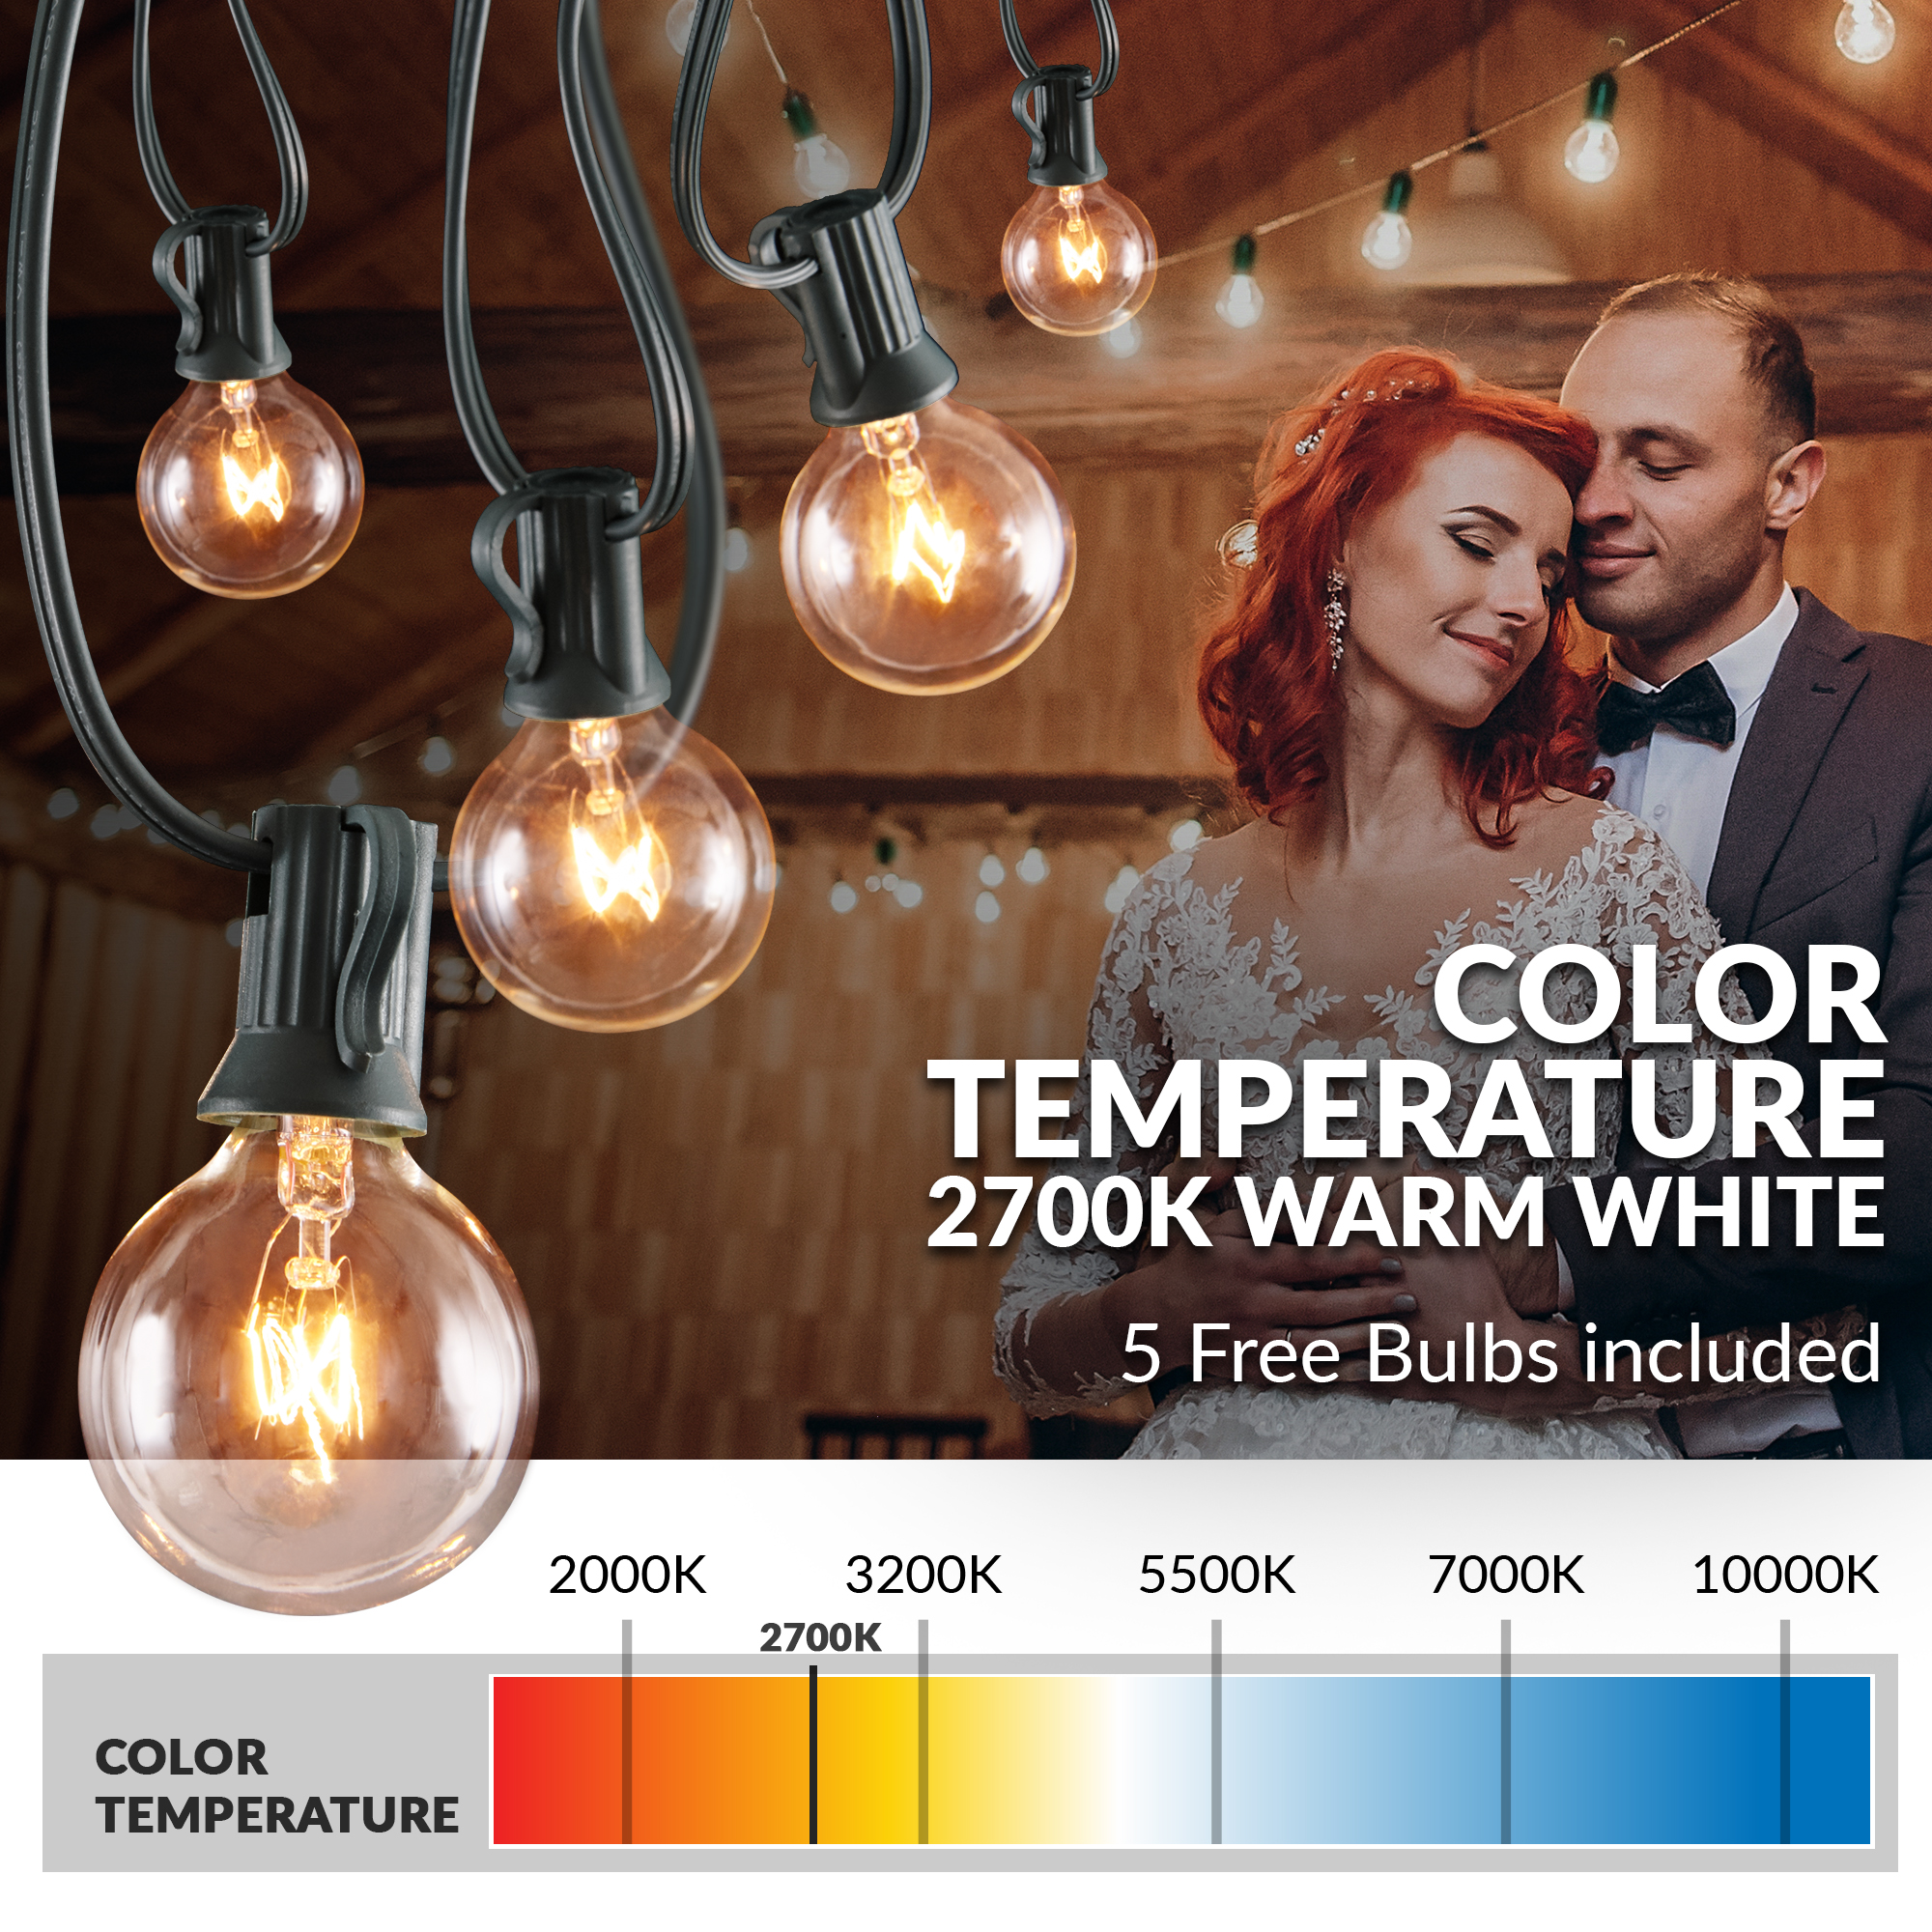 50 Foot 50 Socket Indoor Outdoor Patio String Lights With 55 Incandescent Globe G40 Bulbs 5 Free Bulbs Included Great Wedding Lights Decorations For Patios Porches Backyards Decks Bistros Walmart Com Walmart Com